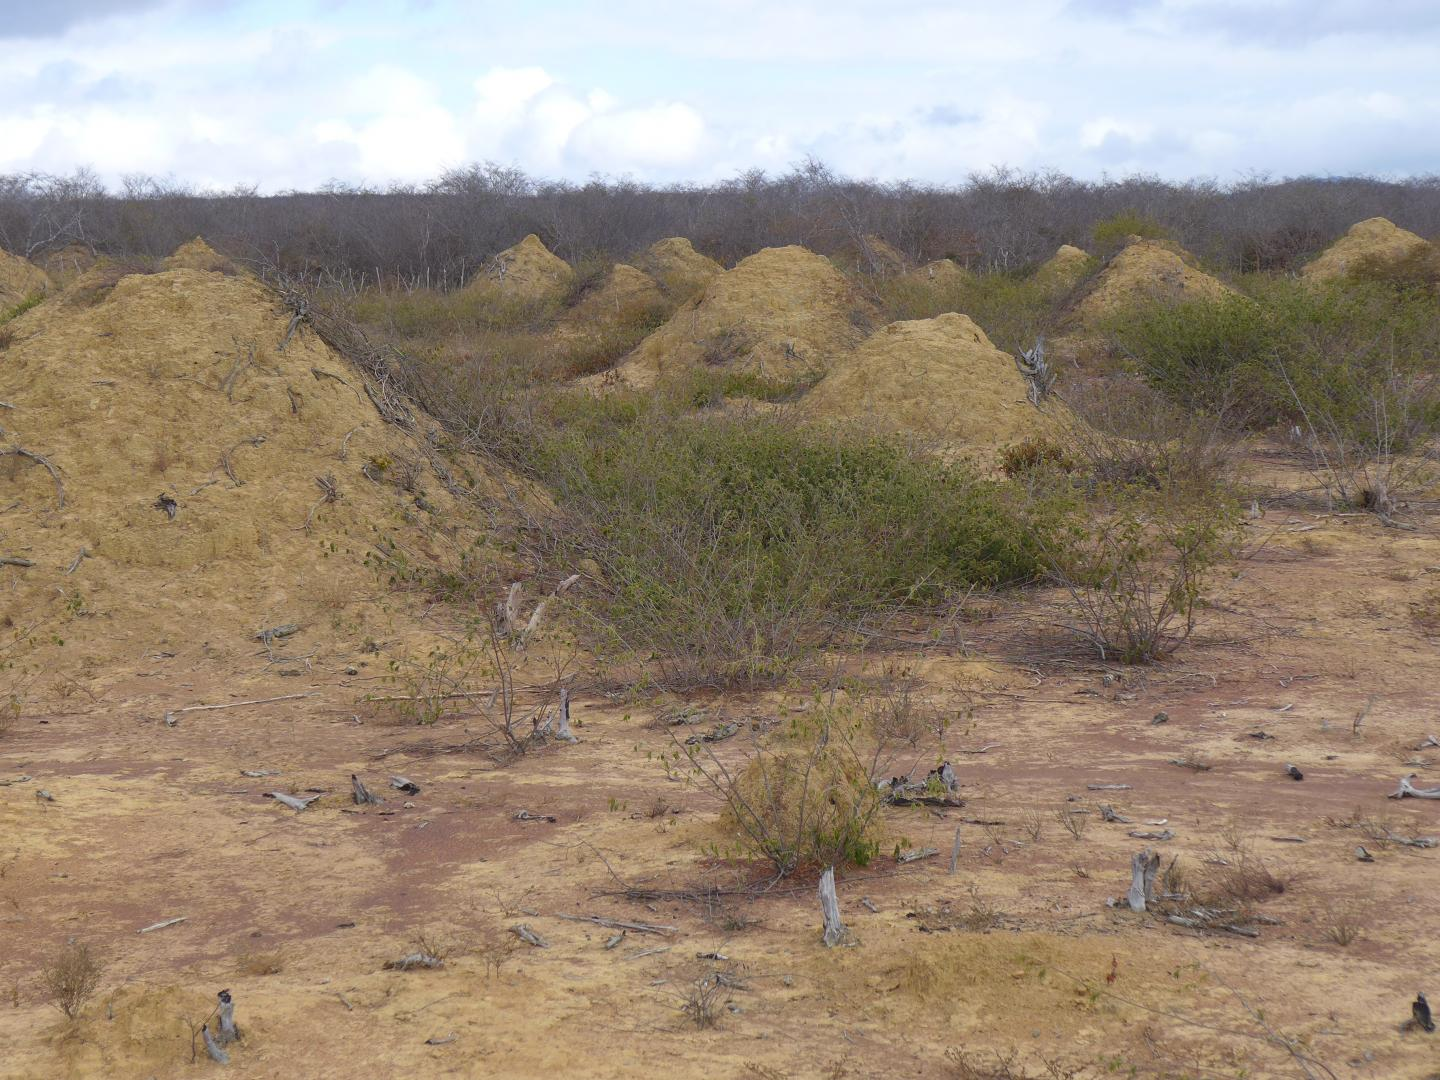 Termite Mounds (1 of 3)